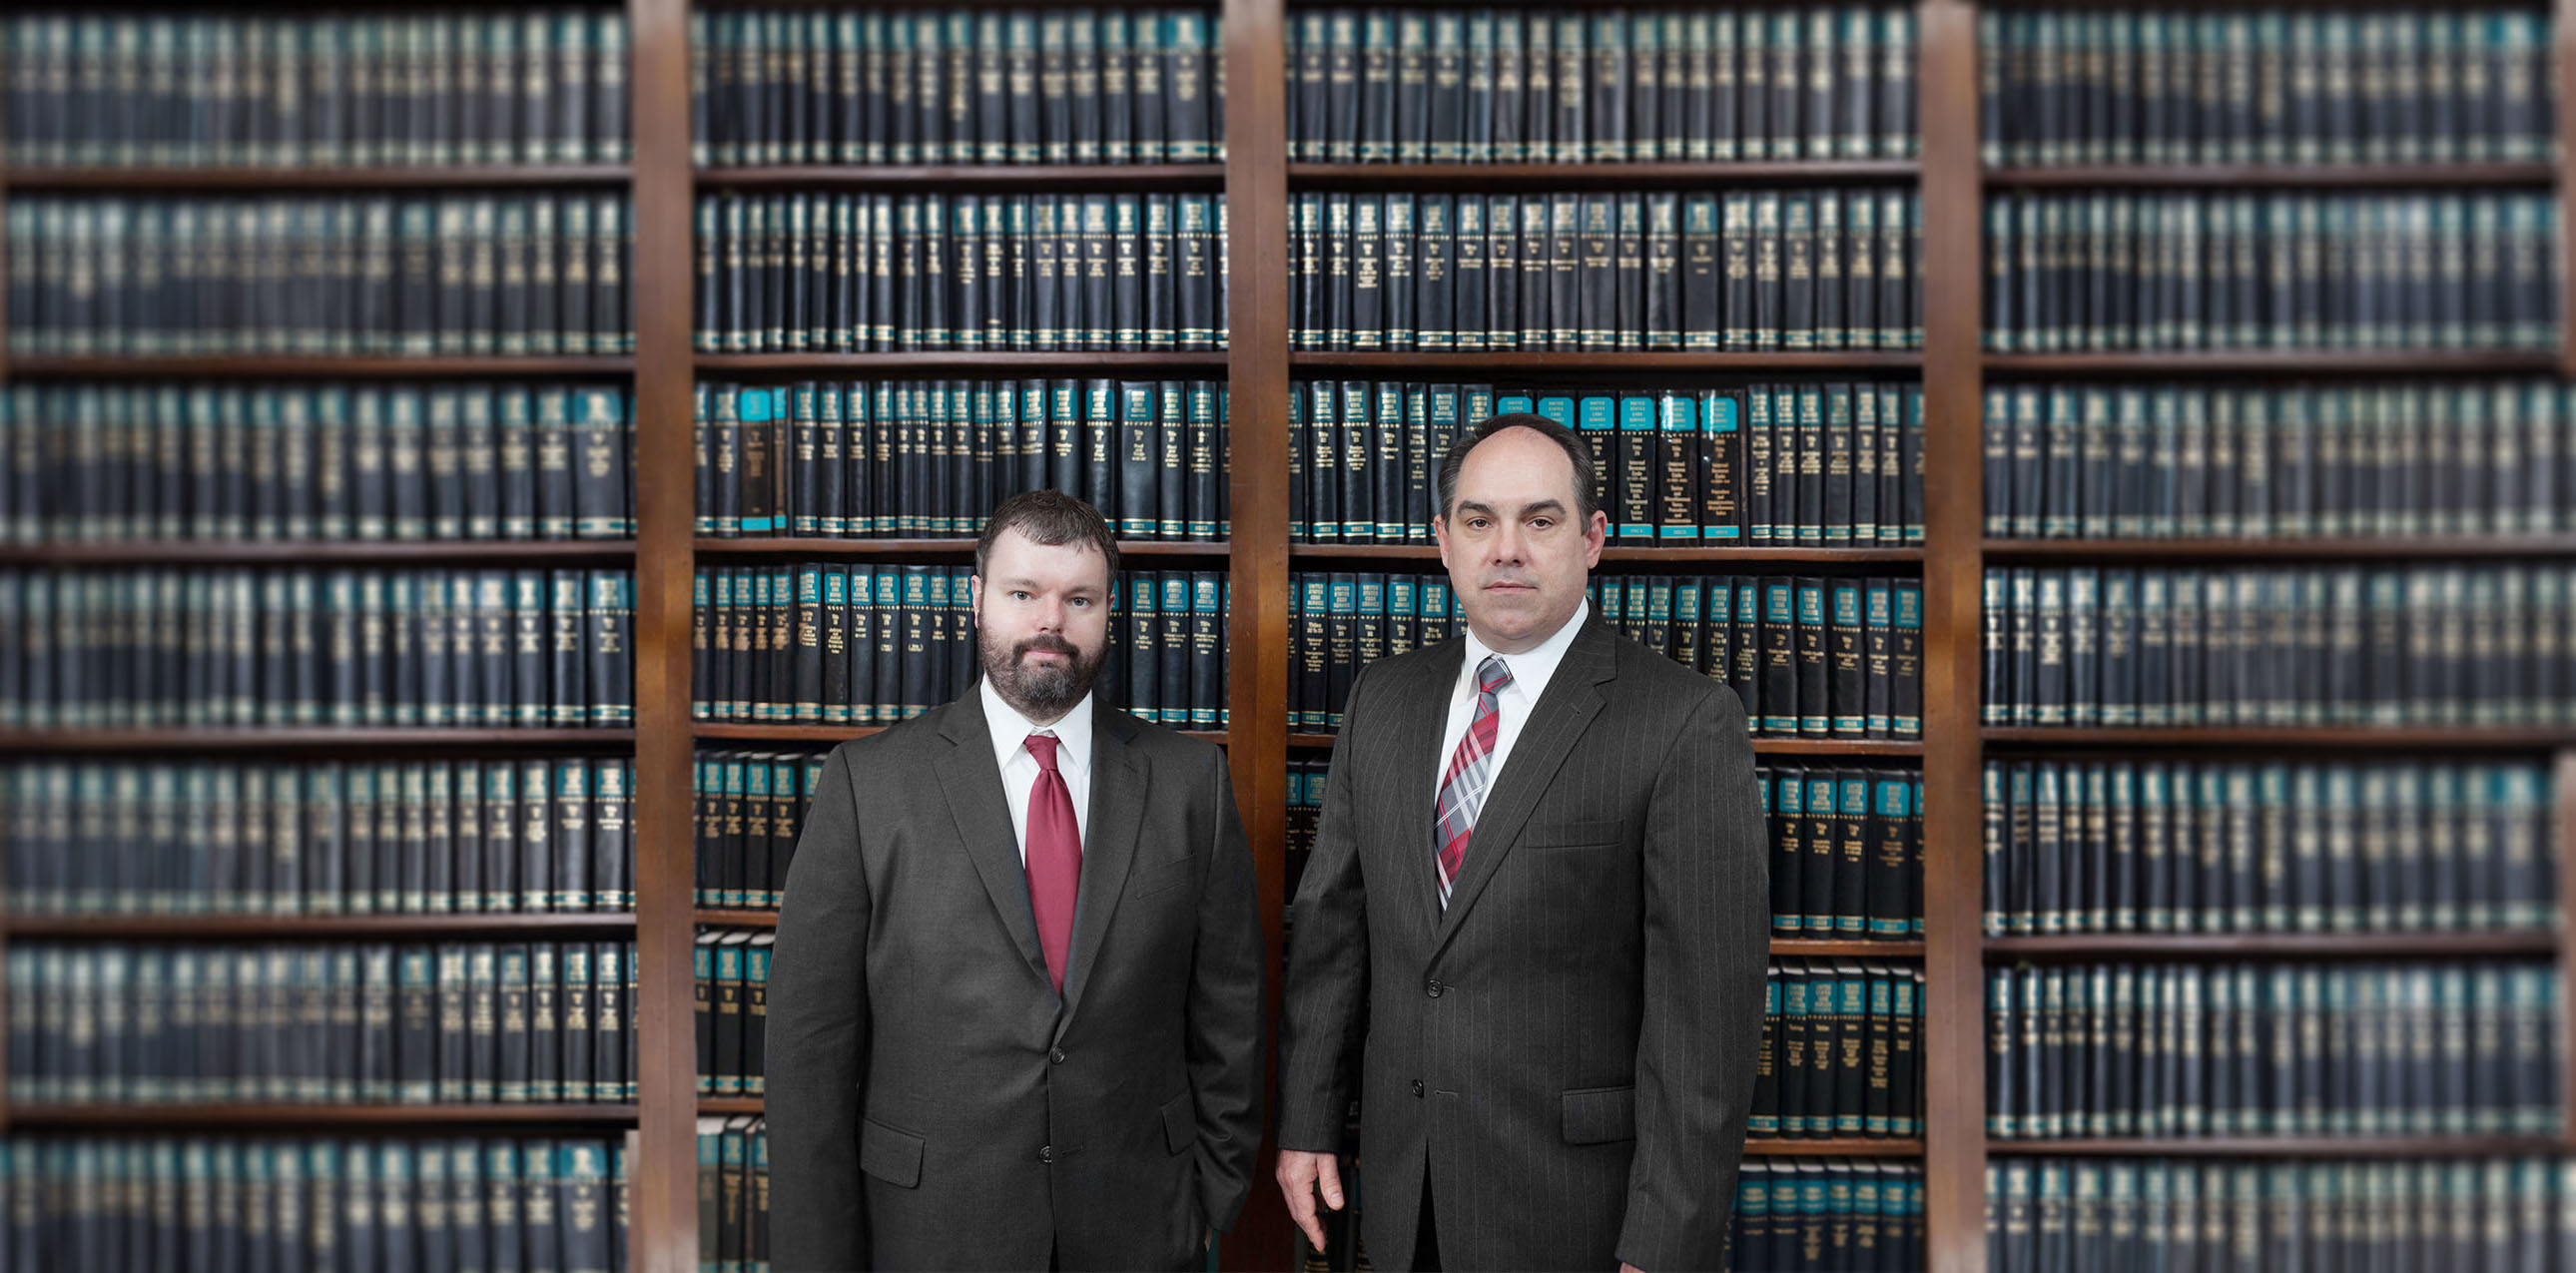 Attorneys in Gadsden, Alabama